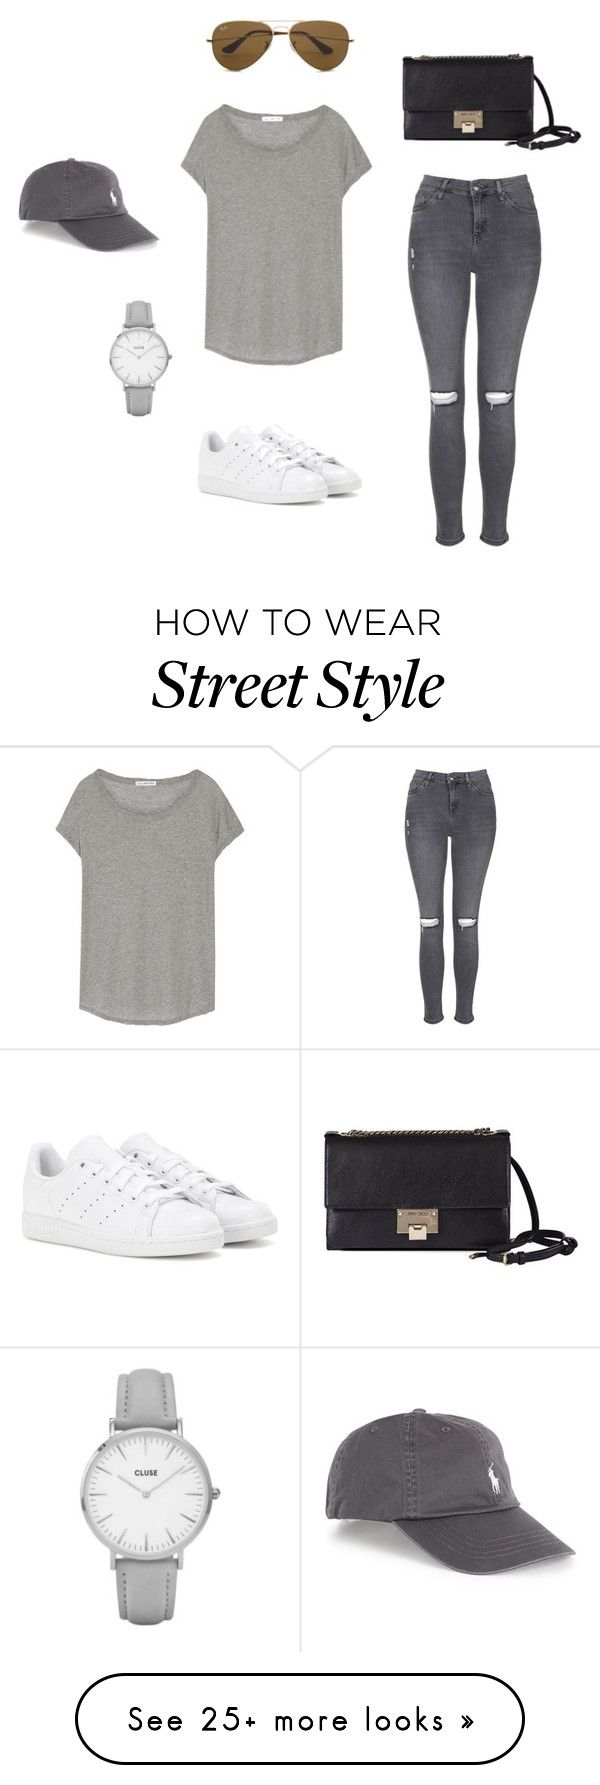 """""""KENDALL JENNER STREET STYLE"""" by iaerik on Polyvore featuring Topshop, adidas, James Perse, Ray-Ban and Jimmy Choo"""